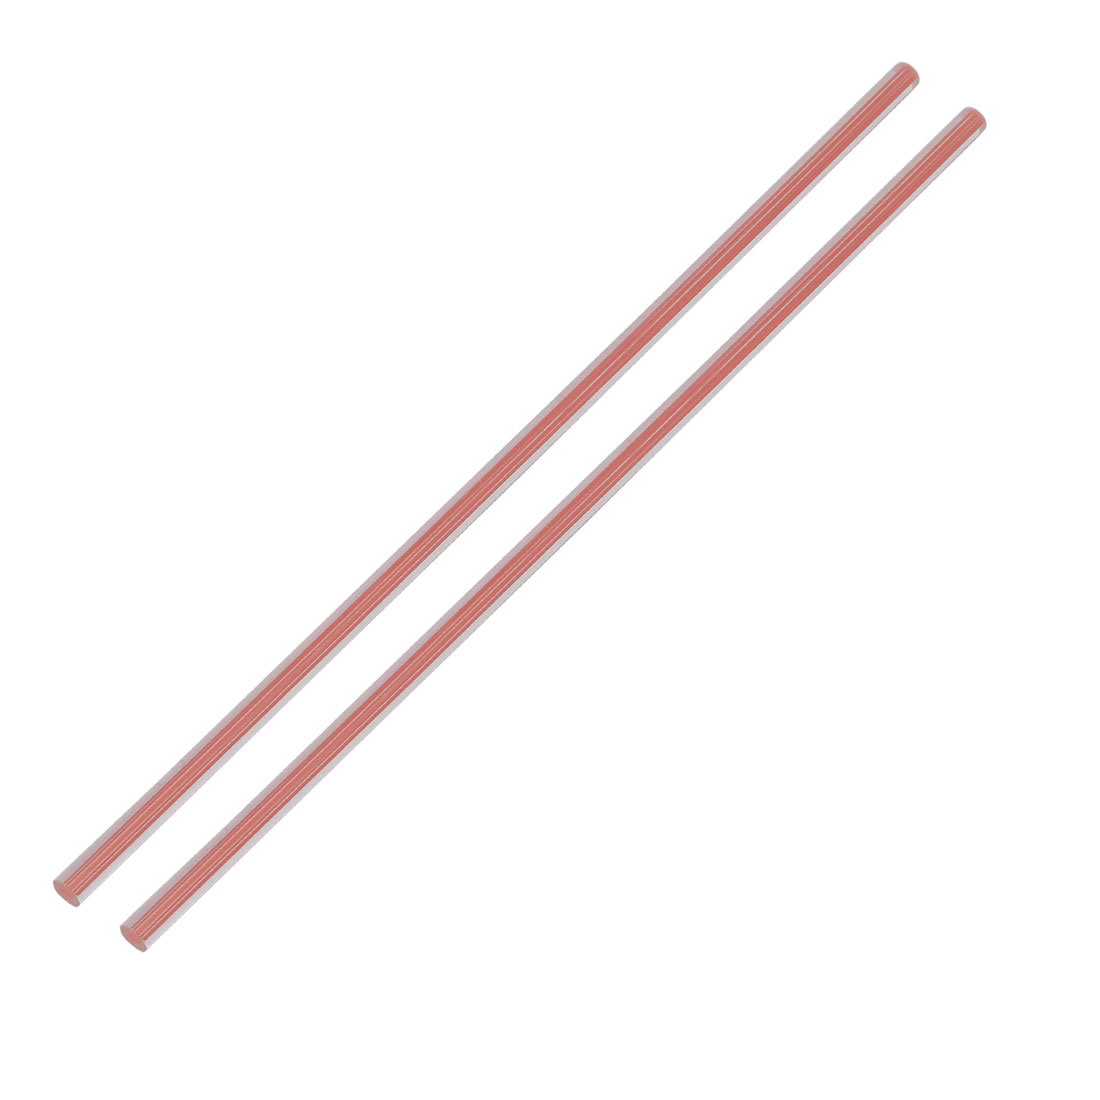 Straight Pink Line Solid Acrylic Round Rod PMMA Bar 250mmx6mm 2pcs